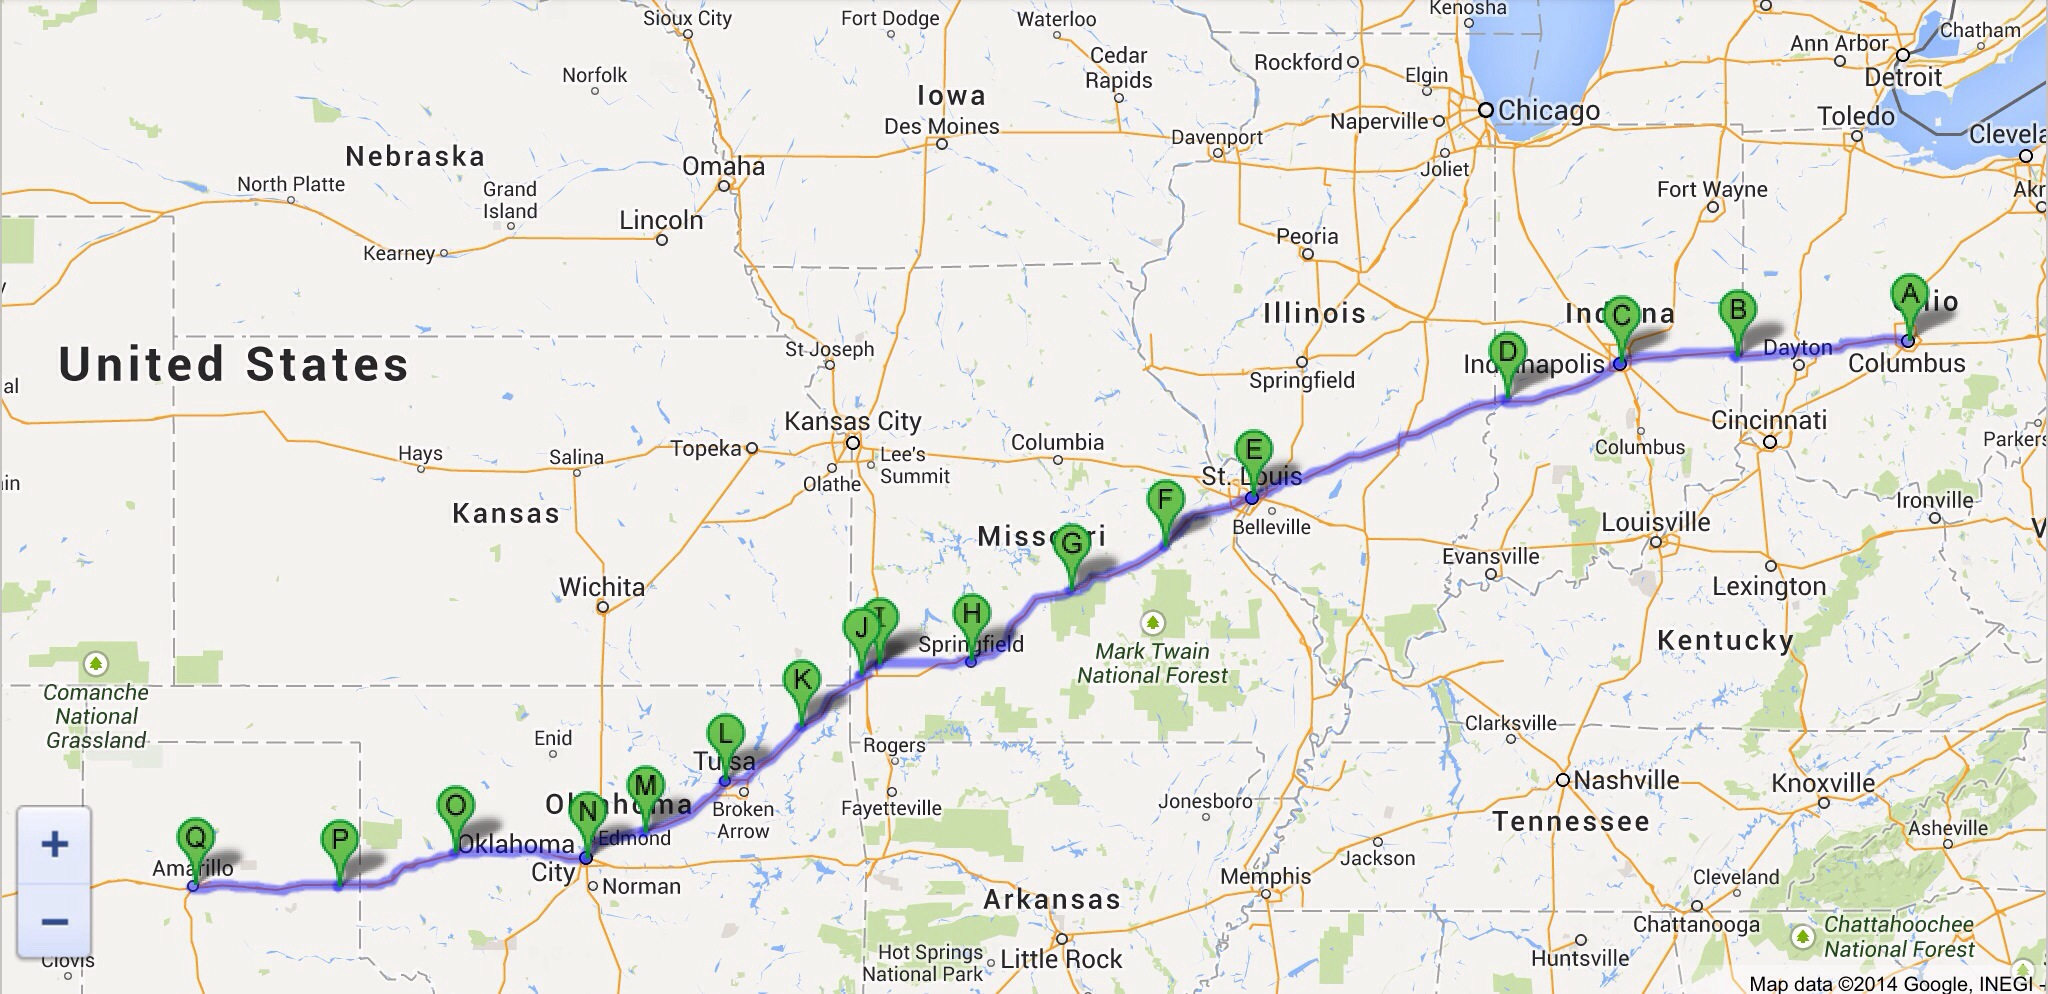 miss cleo's route from ohio to texas (as depicted on google maps)